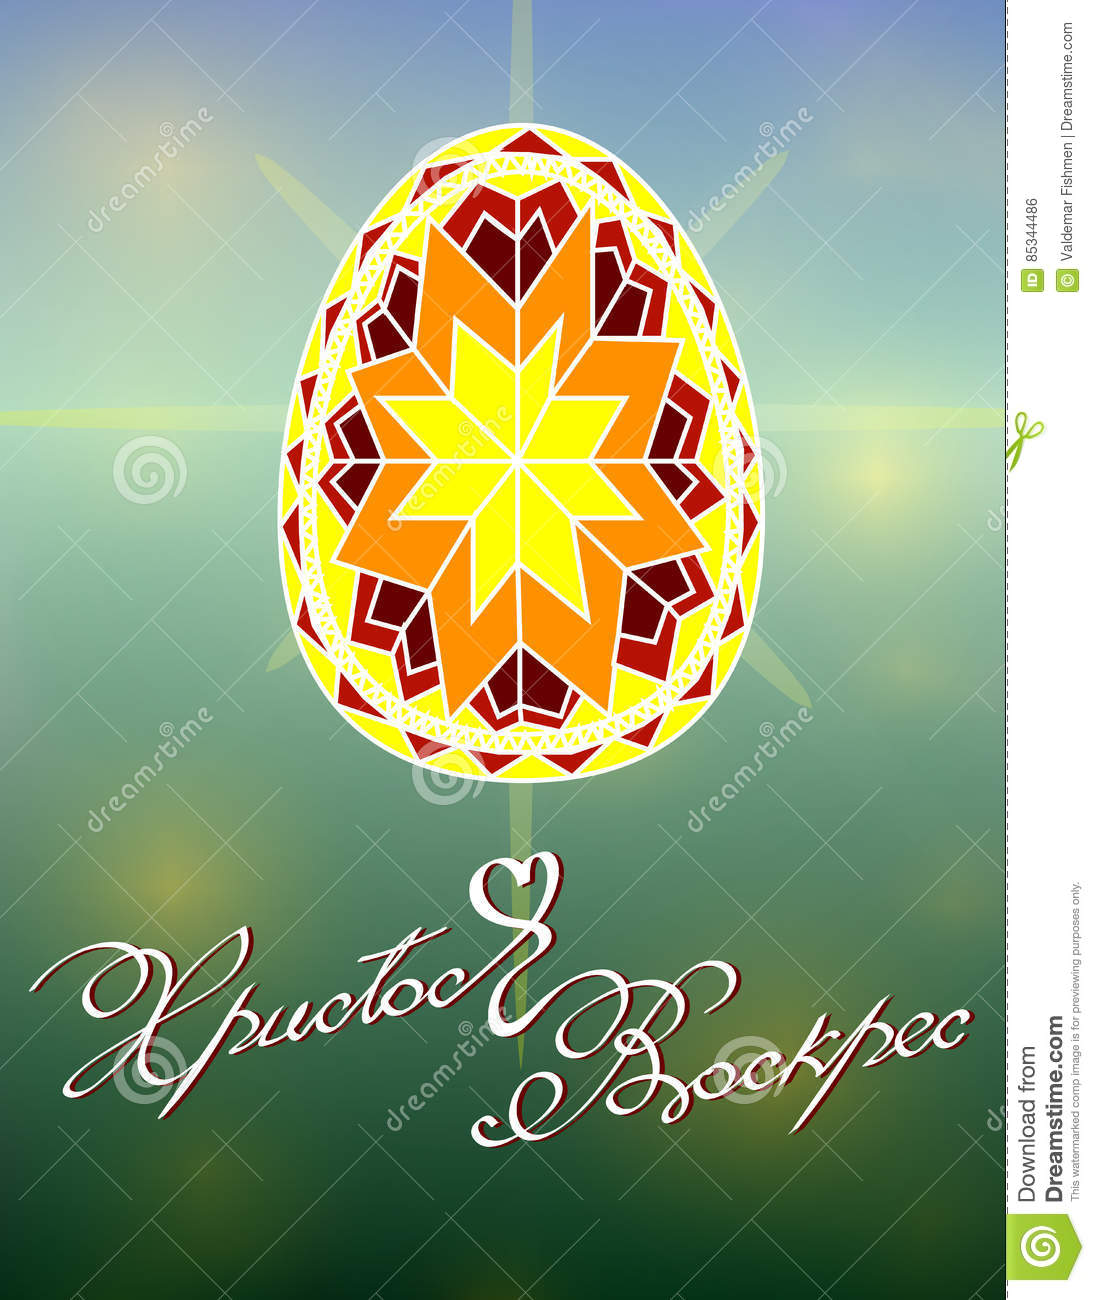 Christ is risen russian cyrillic words ukrainian easter greeting russian cyrillic words ukrainian easter greeting card m4hsunfo